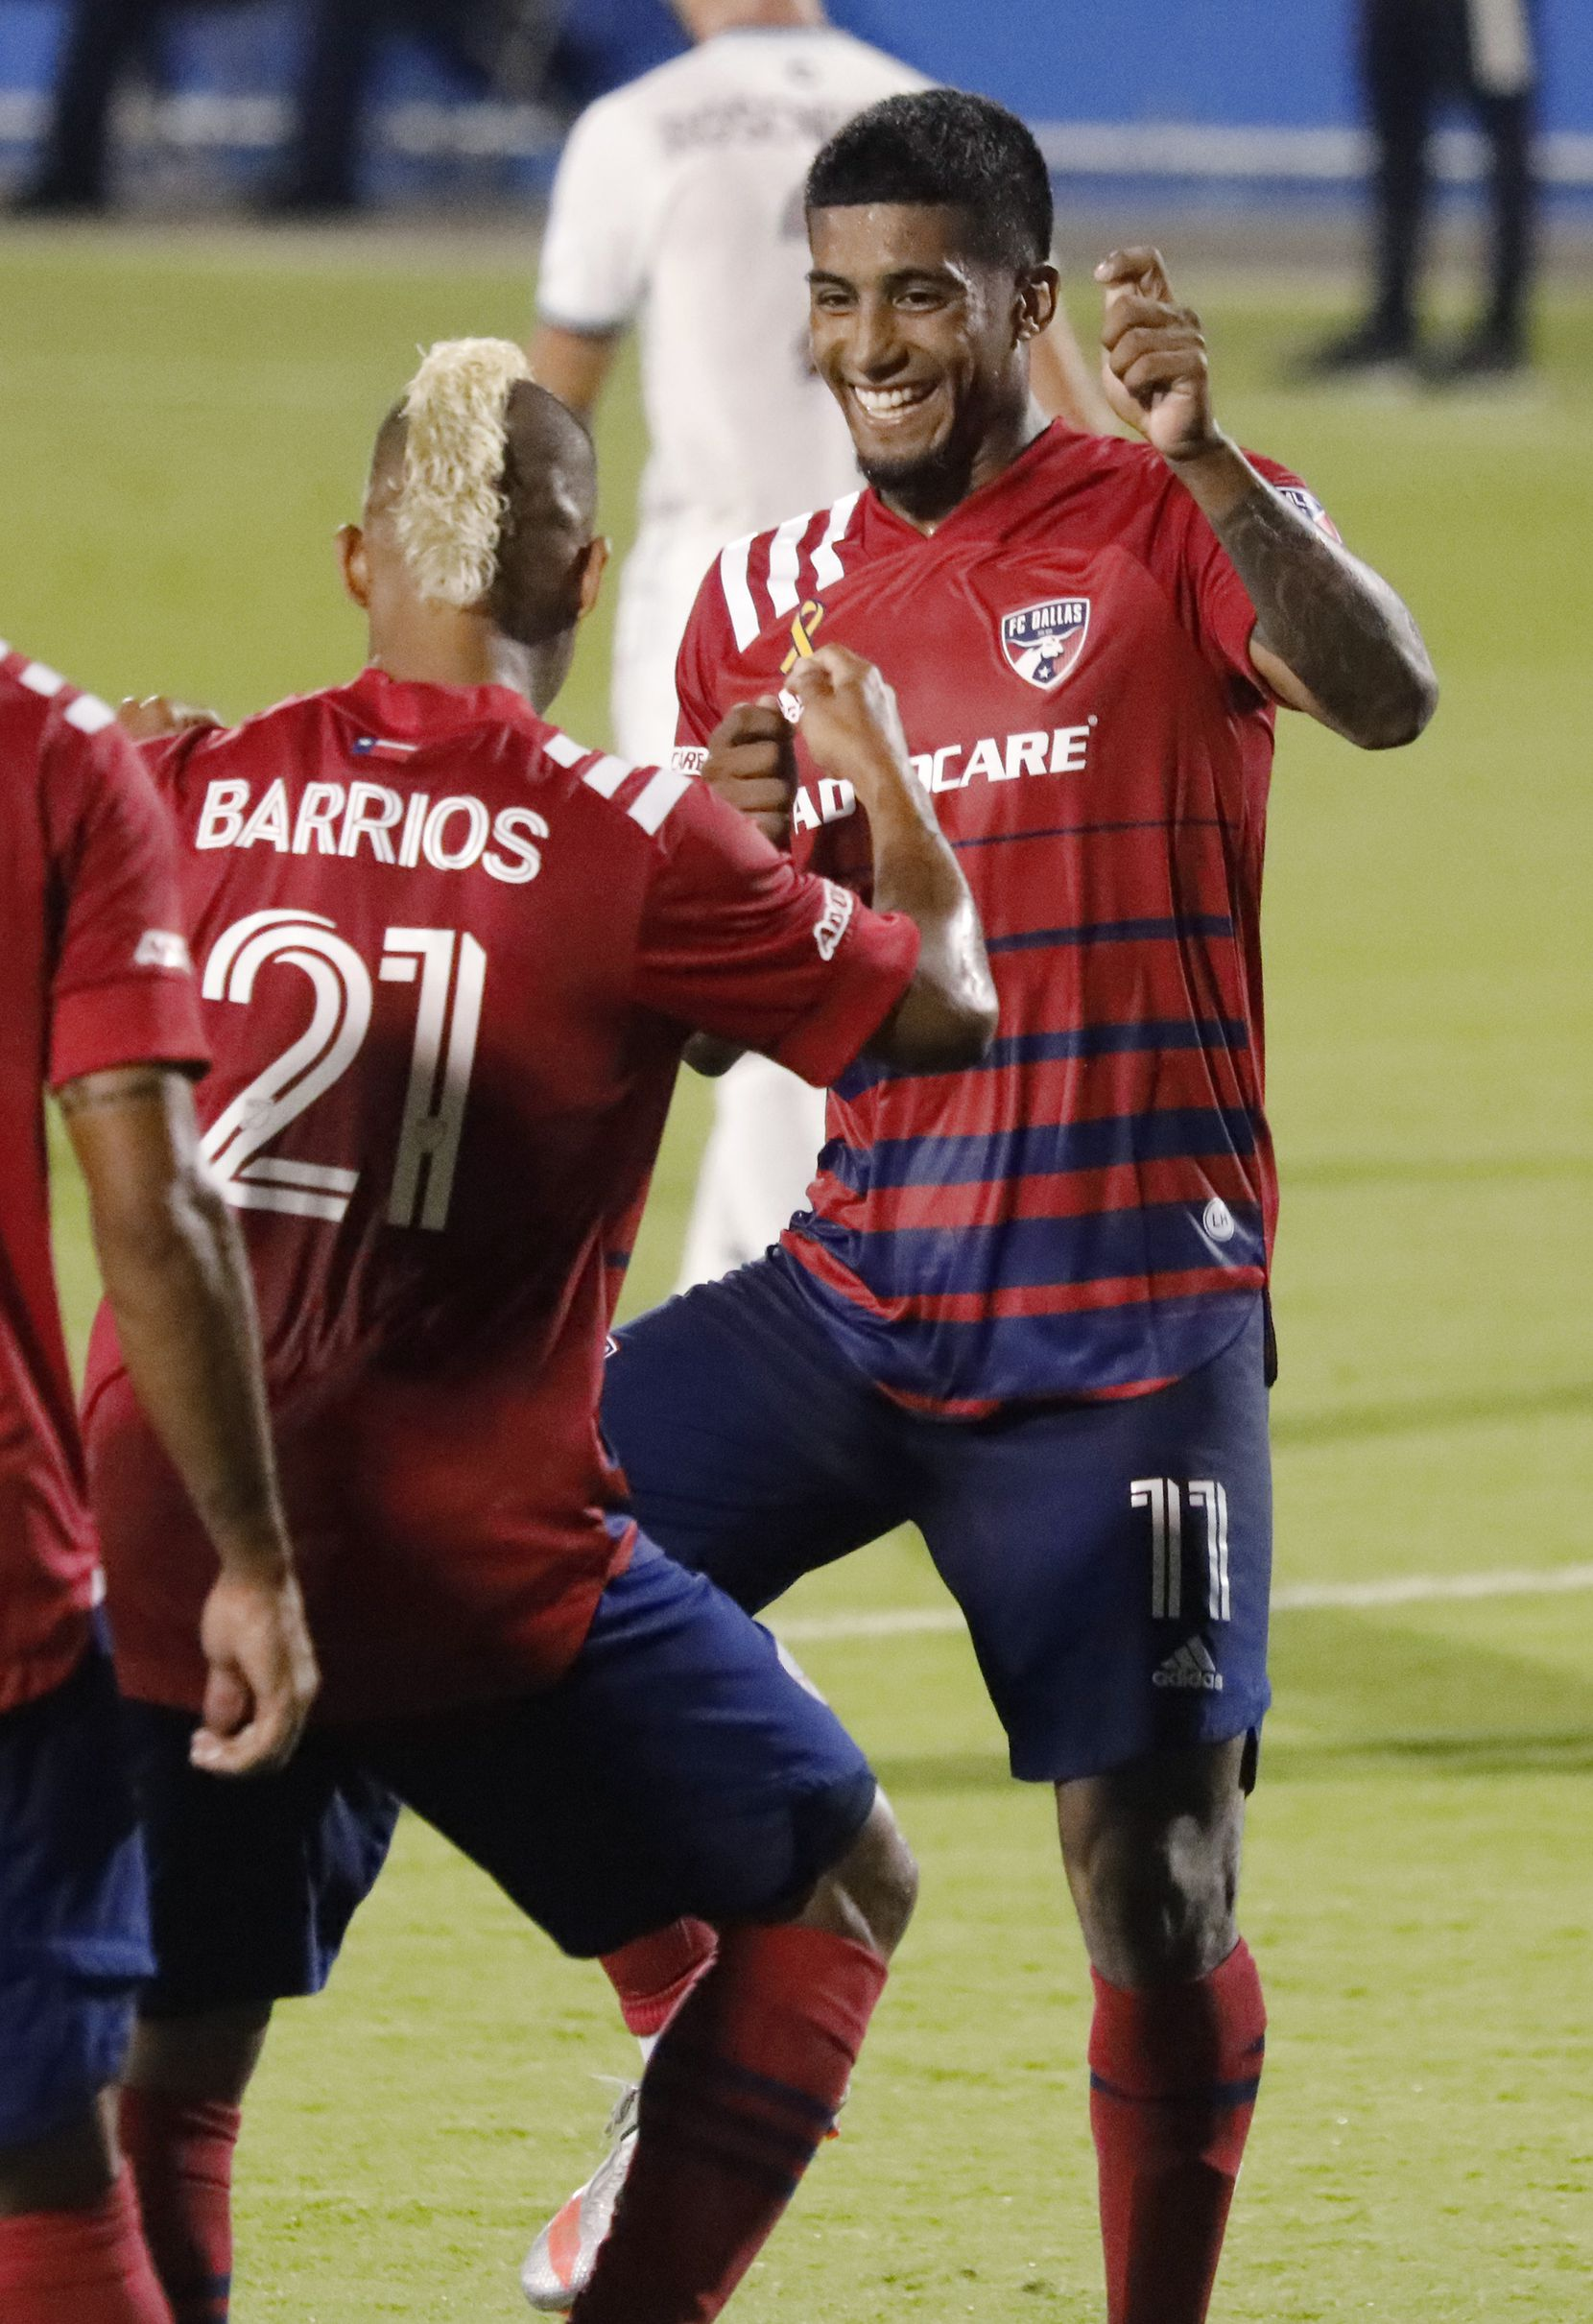 FC Dallas midfielder Santiago Mosquera (11) celebrates his first goal by dancing with FC Dallas midfielder Michael Barrios (21) during the first half as FC Dallas hosted the Colorado Rapids at Toyota Stadium in Frisco on Wednesday night, September 16, 2020. (Stewart F. House/Special Contributor)